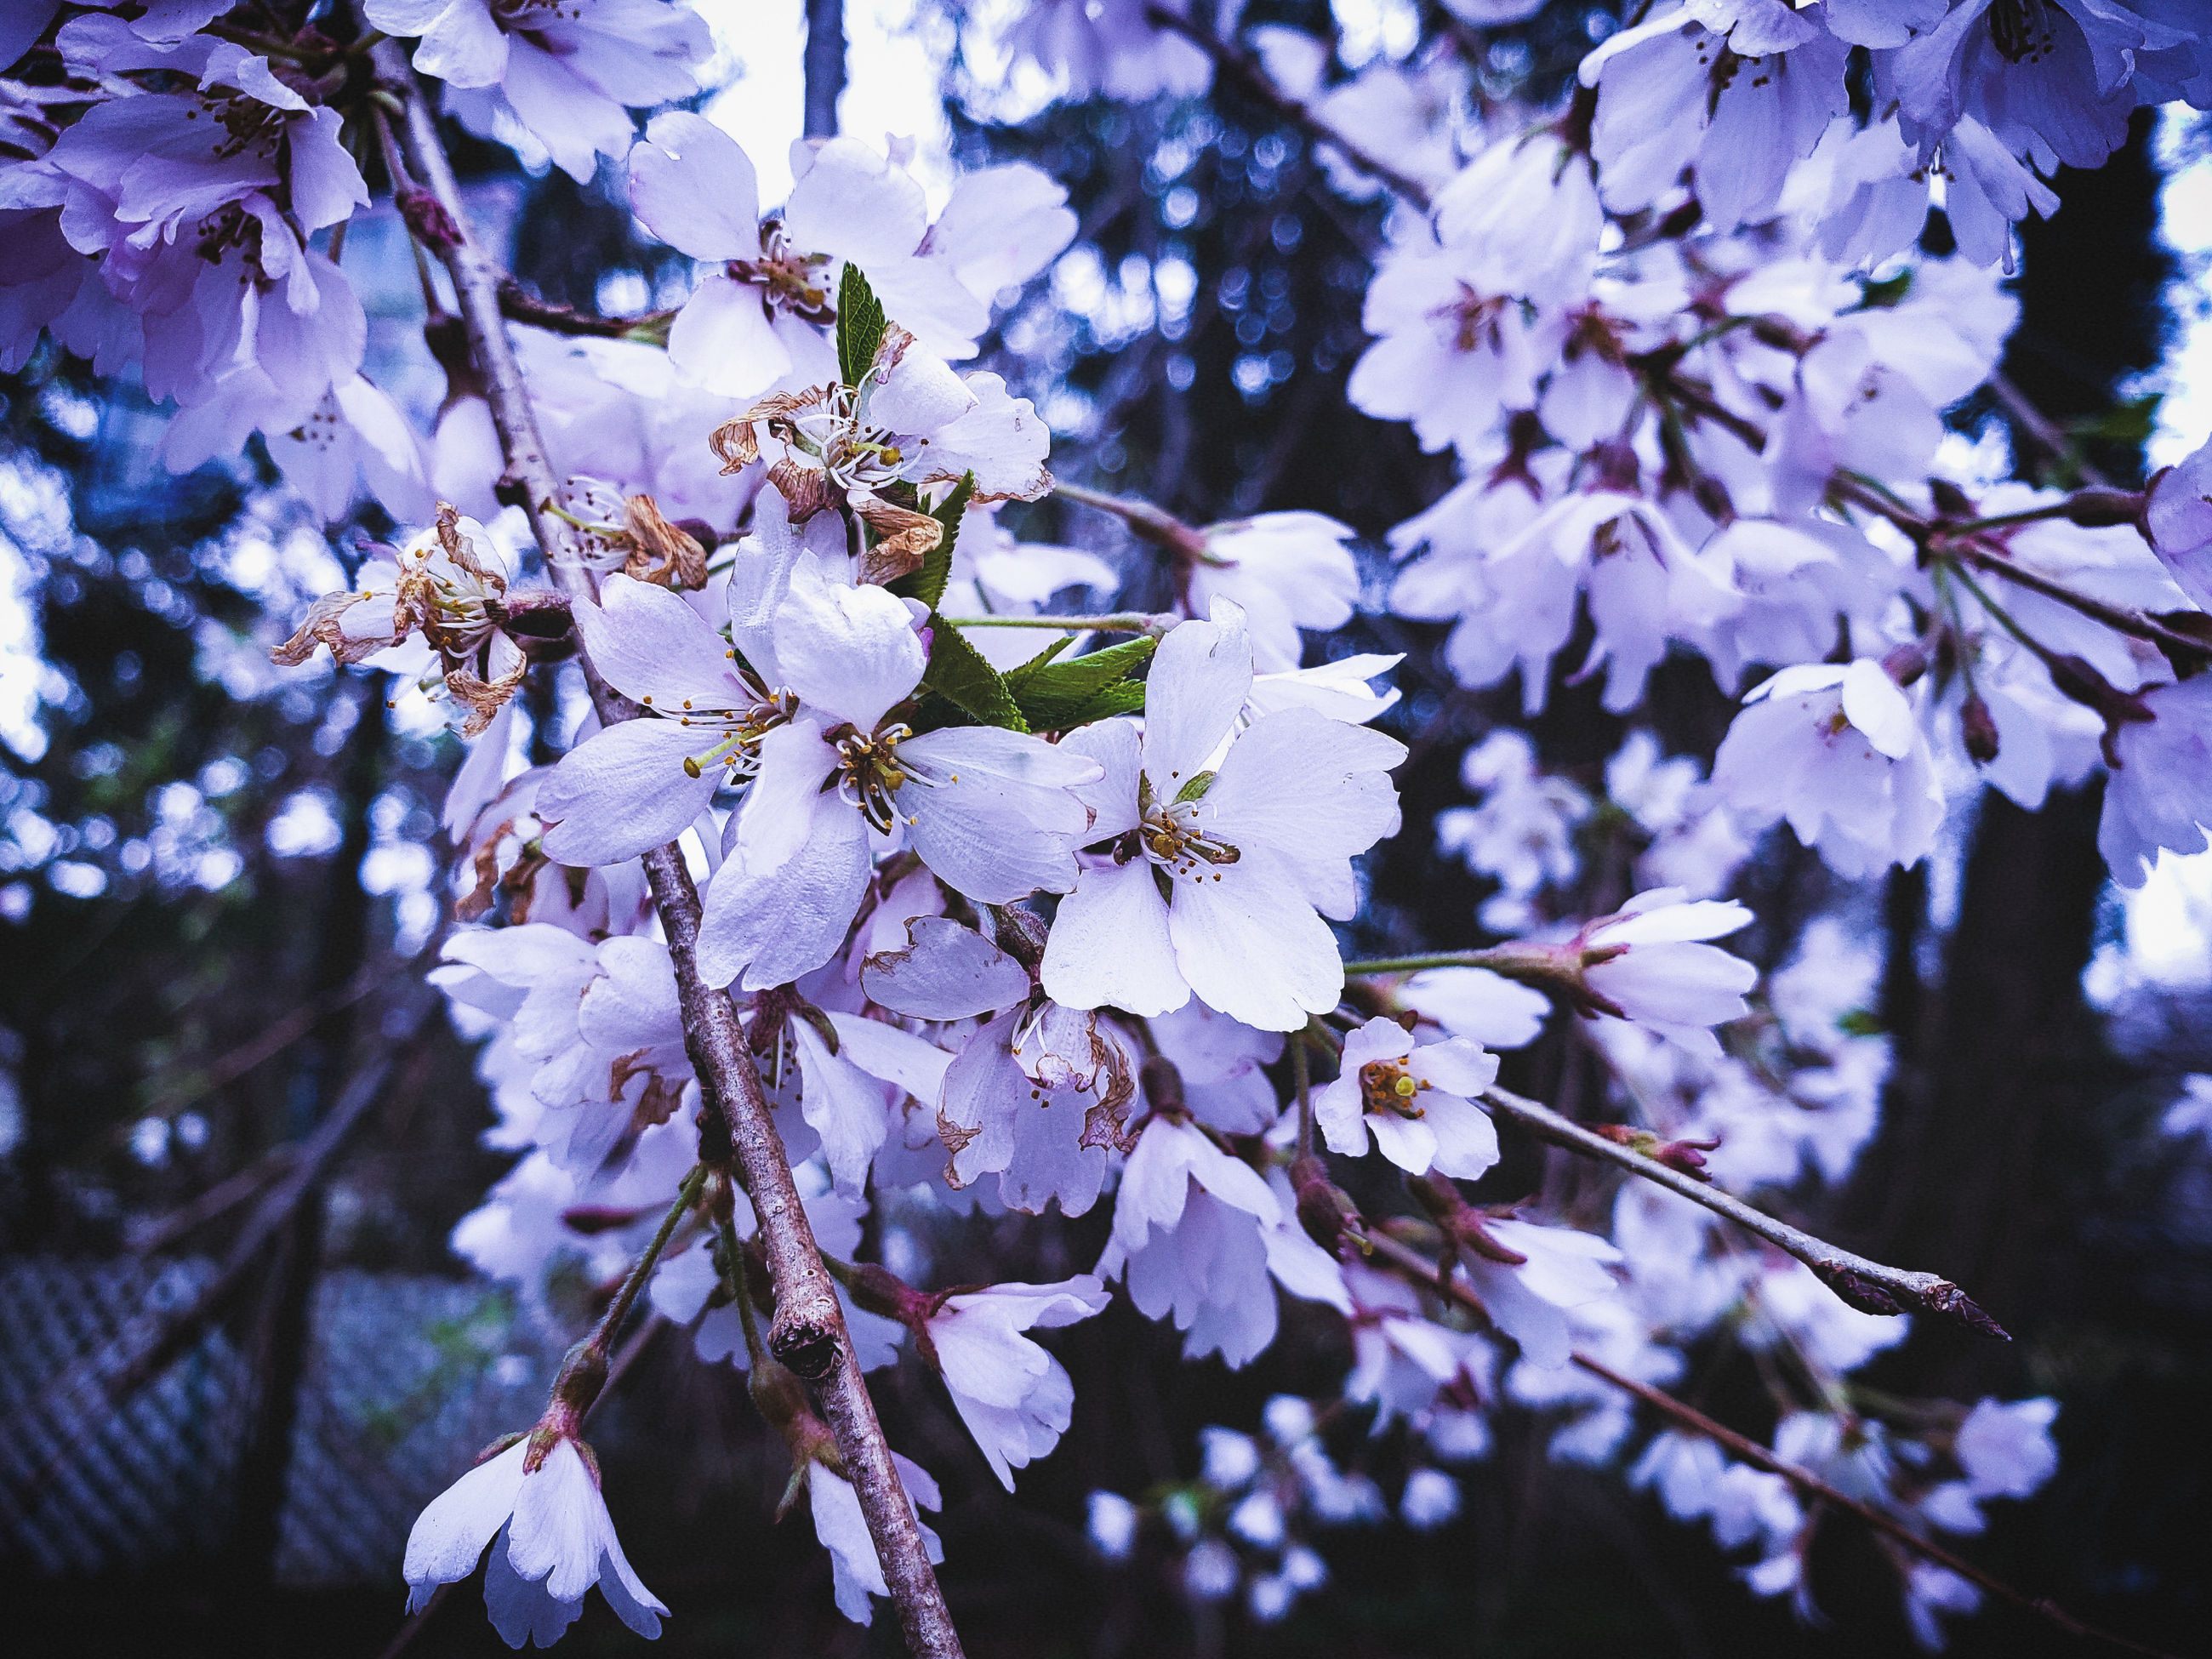 flower, flowering plant, plant, fragility, freshness, vulnerability, growth, beauty in nature, blossom, tree, petal, springtime, branch, close-up, focus on foreground, flower head, nature, inflorescence, day, twig, pollen, no people, cherry blossom, outdoors, cherry tree, spring